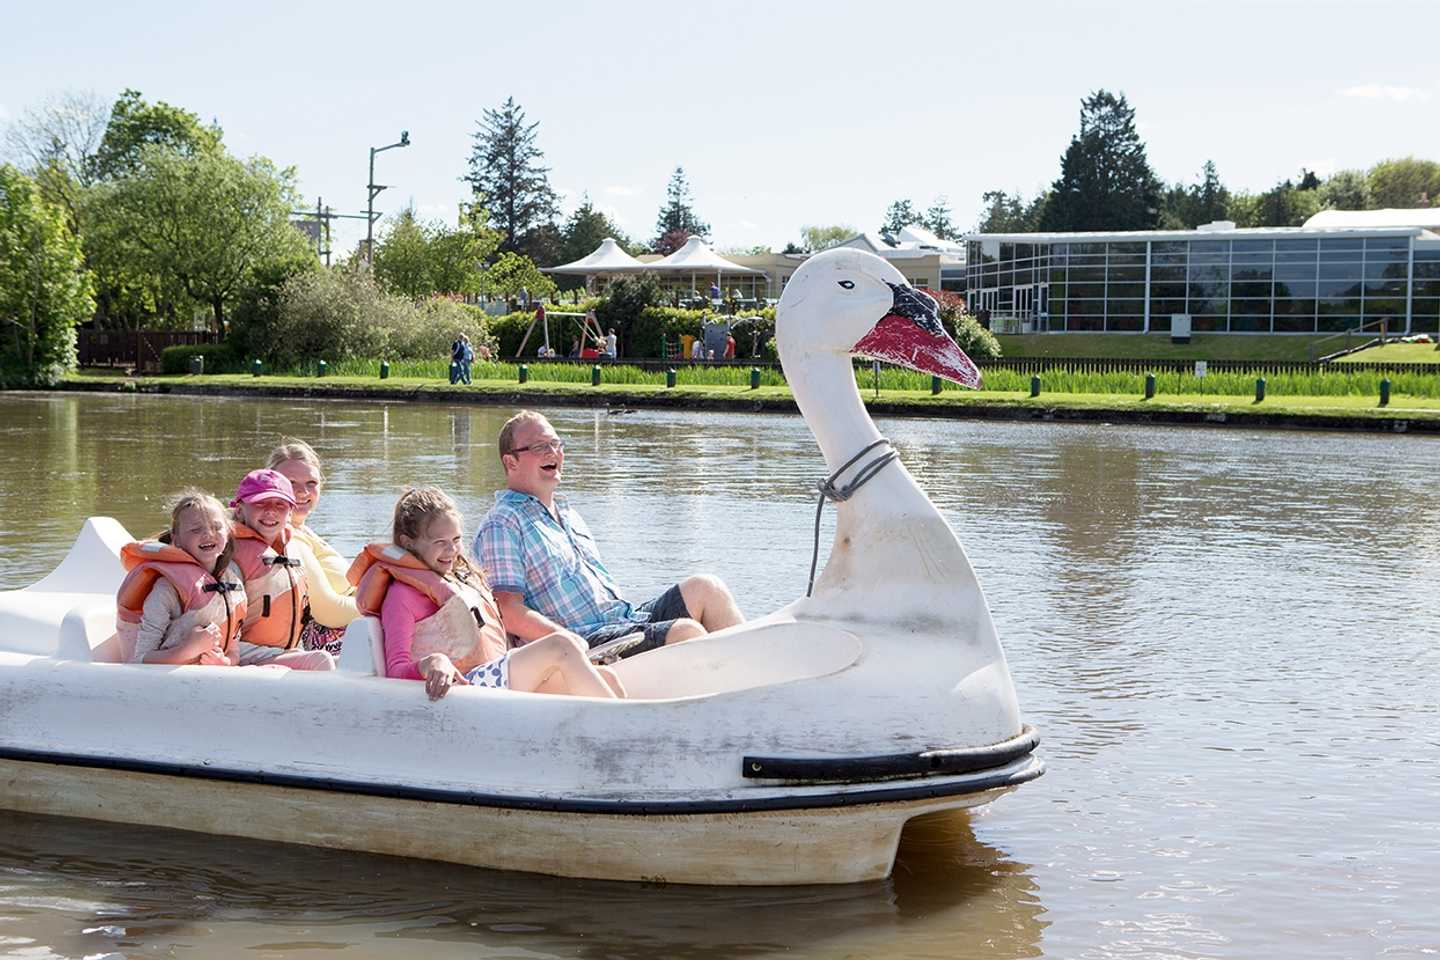 A family in a pedalo on the boating lake